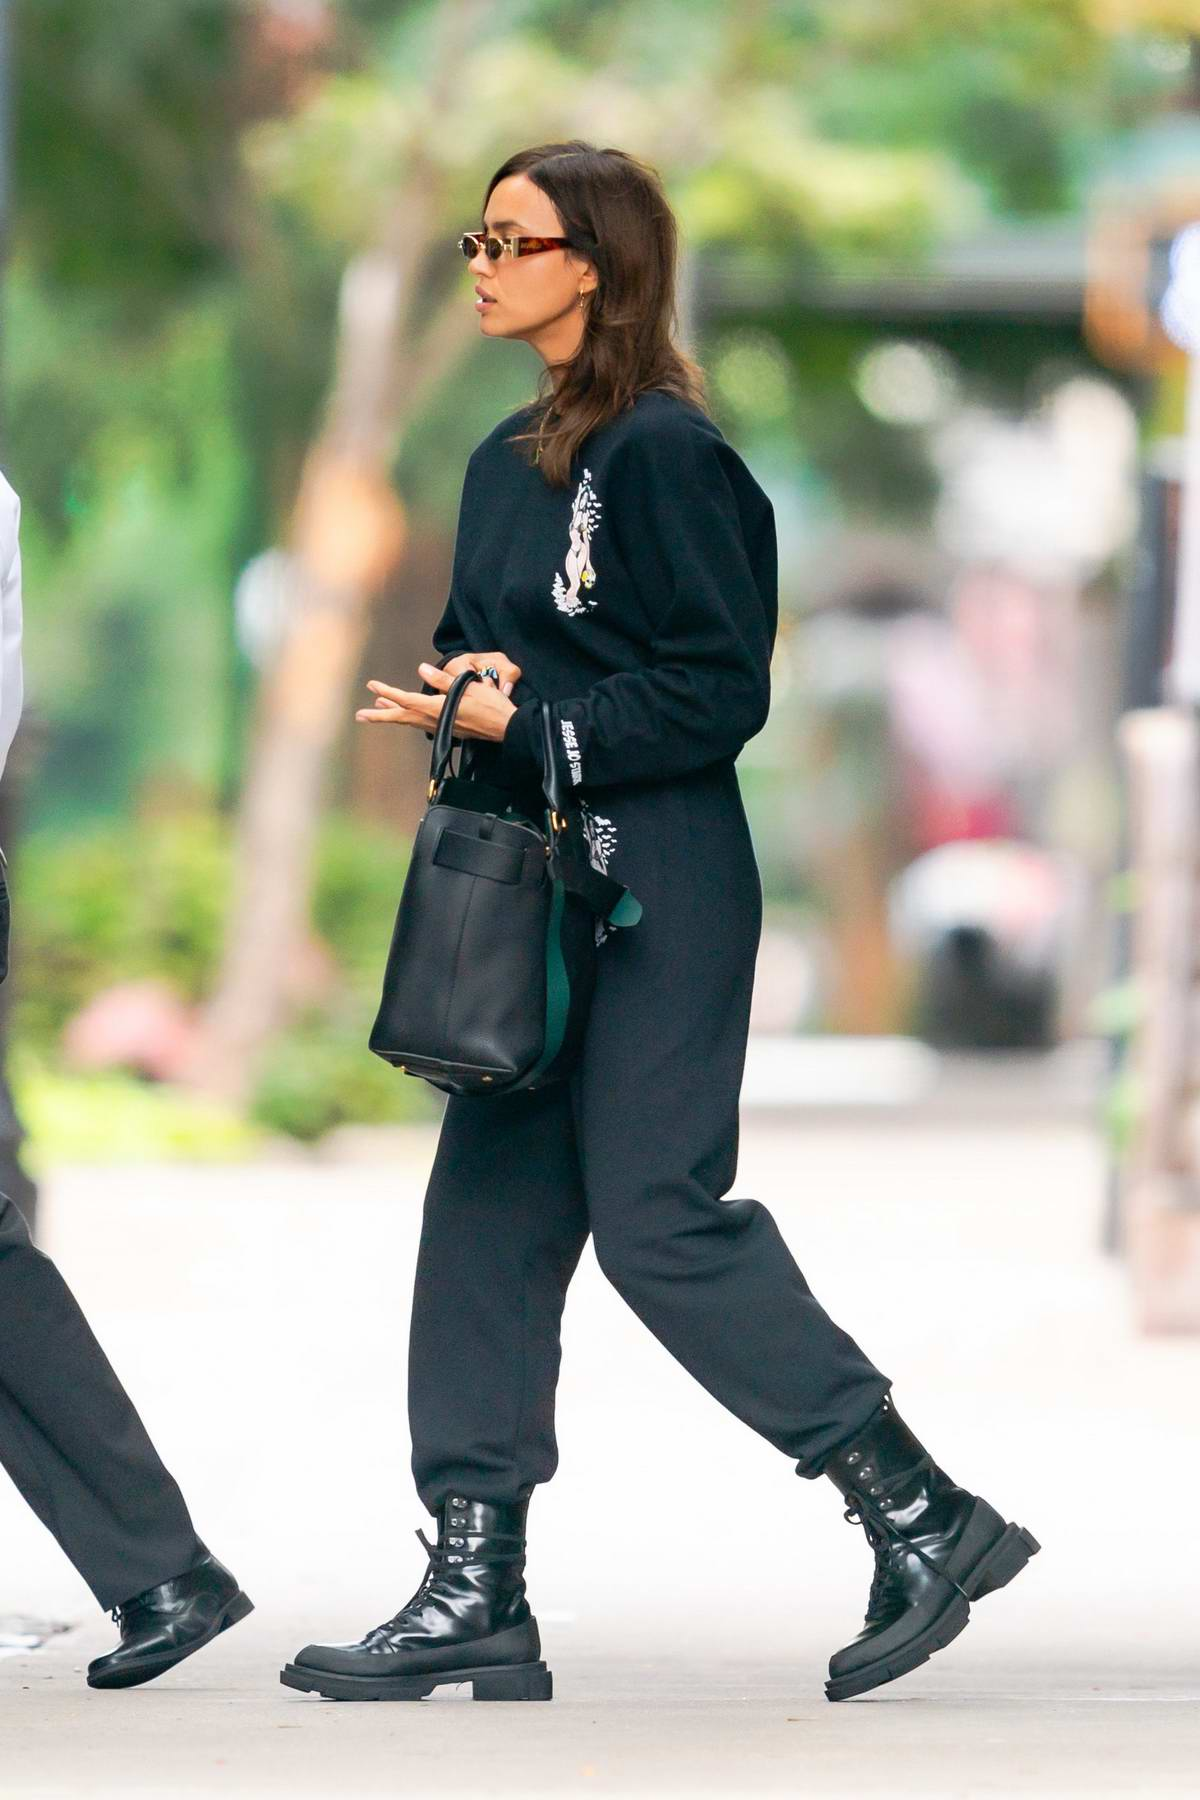 Irina Shayk steps out wearing an all-black sweatsuit and combat boots in New York City